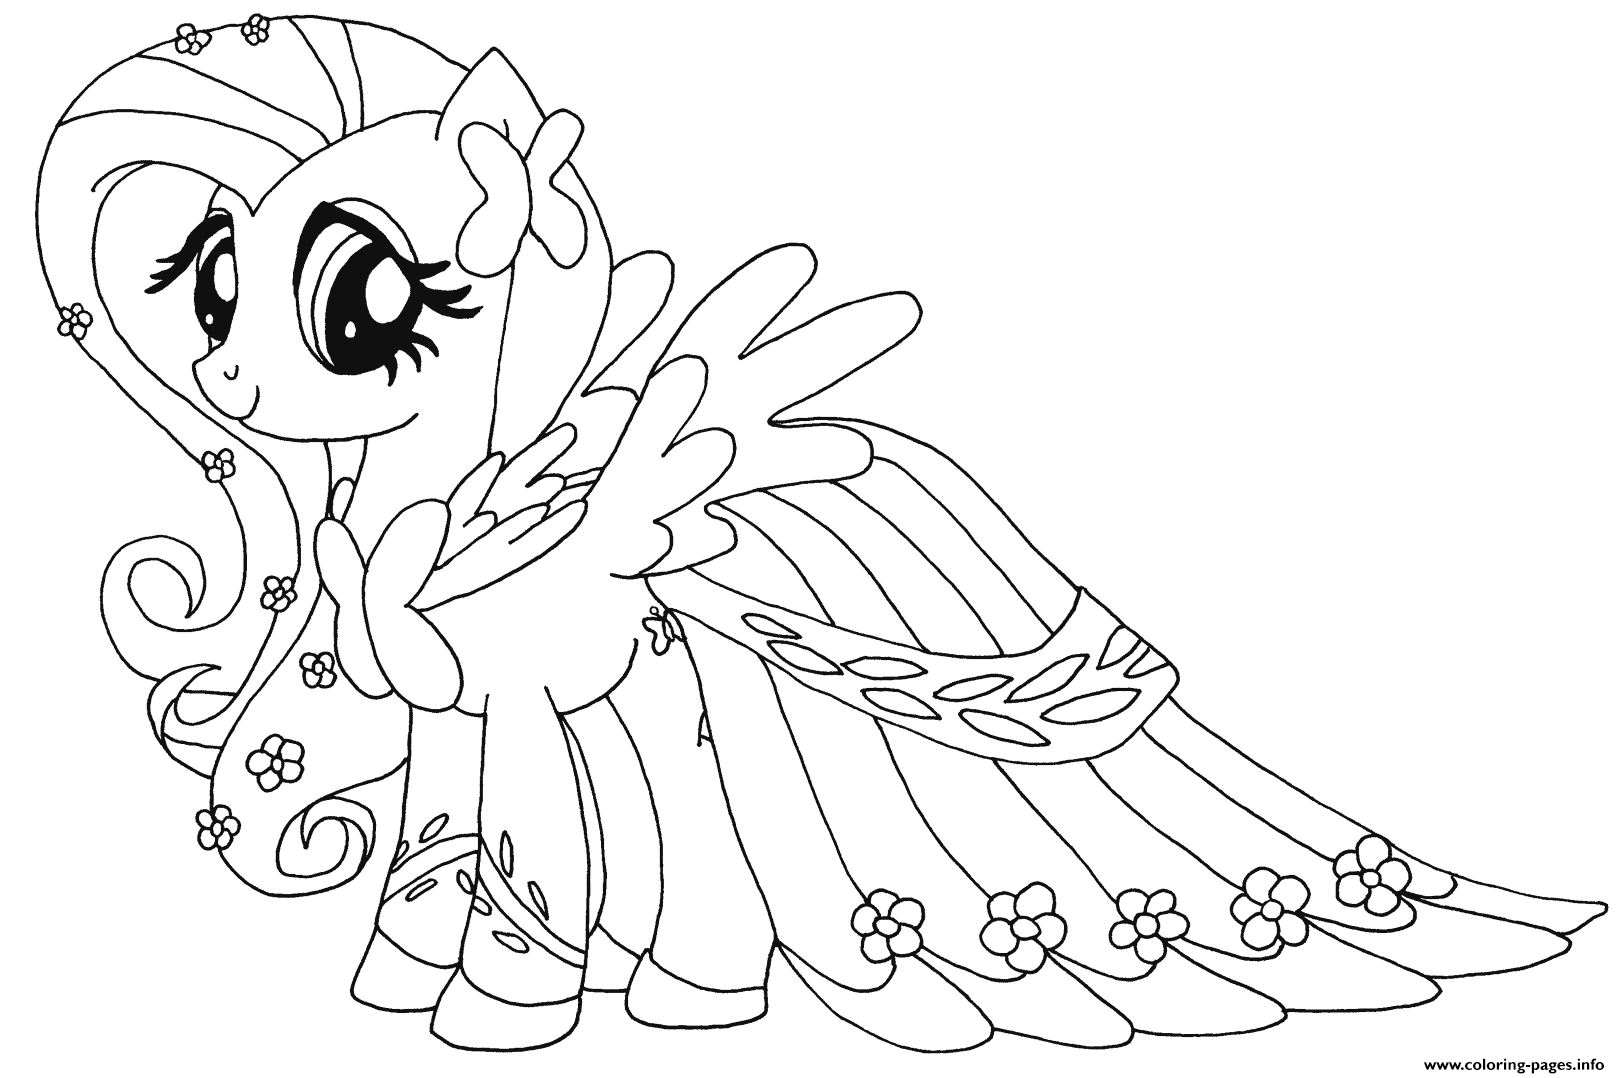 Print Fluttershy My Little Pony Coloring Pages My Little Pony Drawing My Little Pony Coloring Pony Drawing